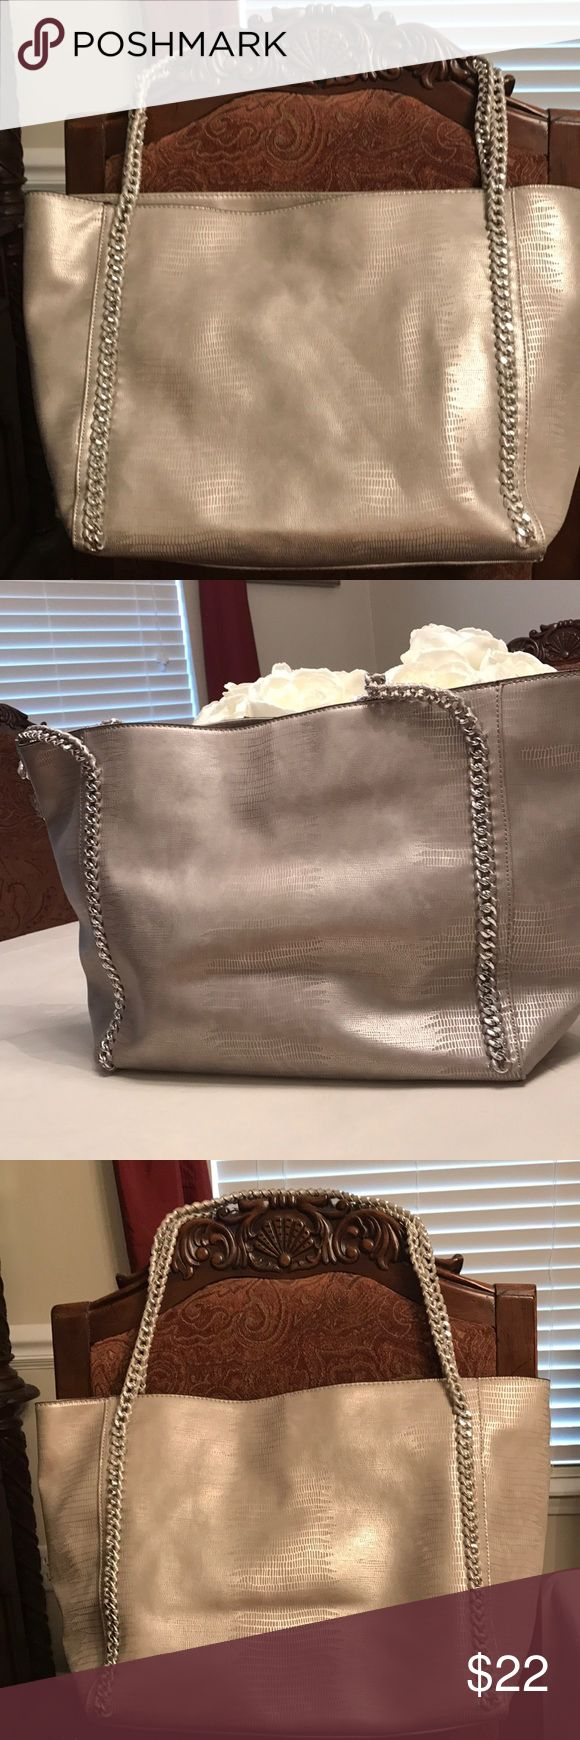 Mossimo silver tote bag with chain straps This bag is super roomy and cute. Silver metallic , almost looks like snakeskin with the chain straps. Used twice. In excellent condition. Mossimo Bags Shoulder Bags